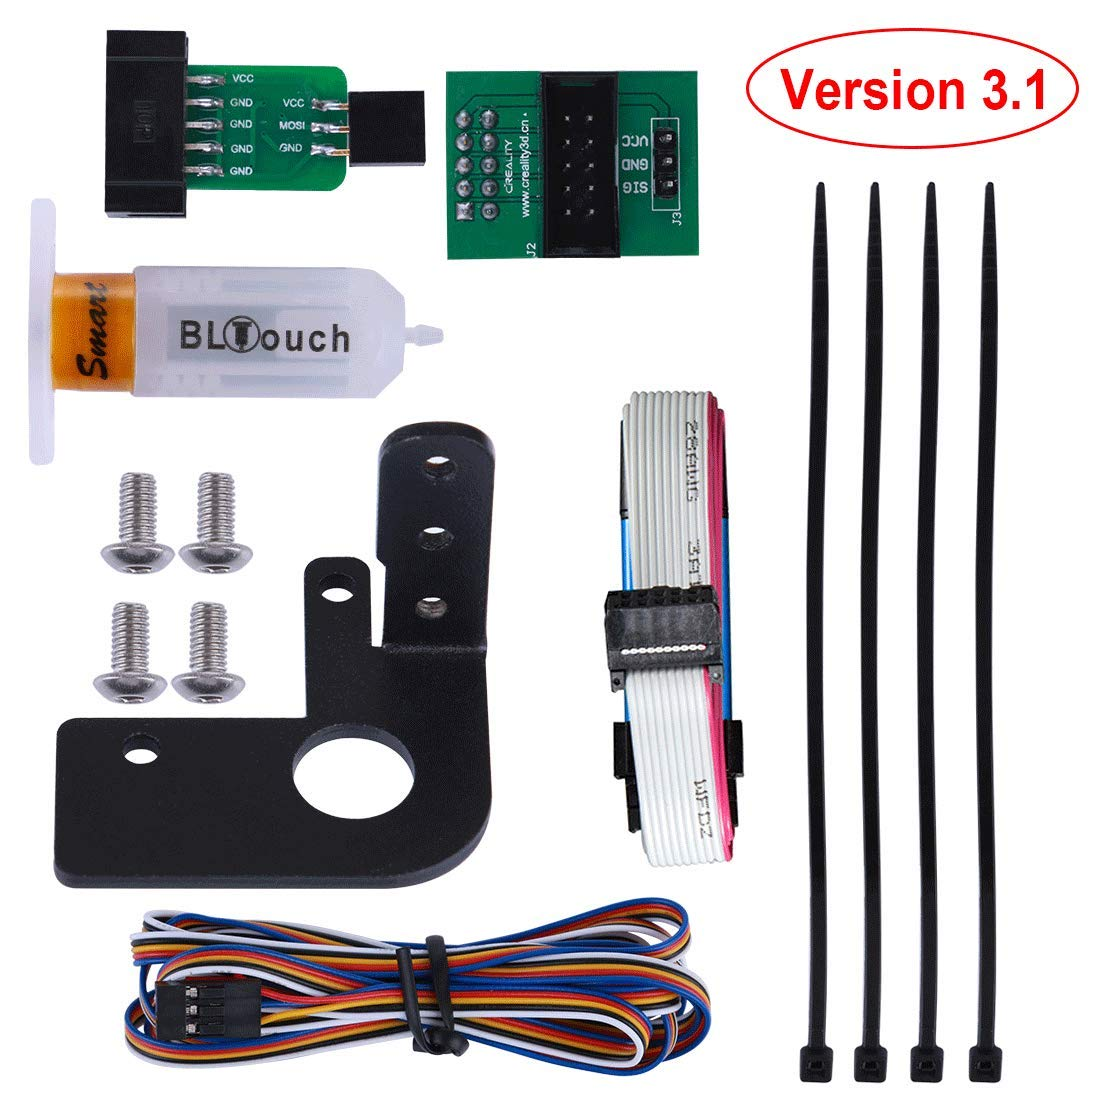 Auto Bed Leveling Sensor//To be a Premium 3D Printer ANTCLABS BLTouch With 1M Extension Cable Set